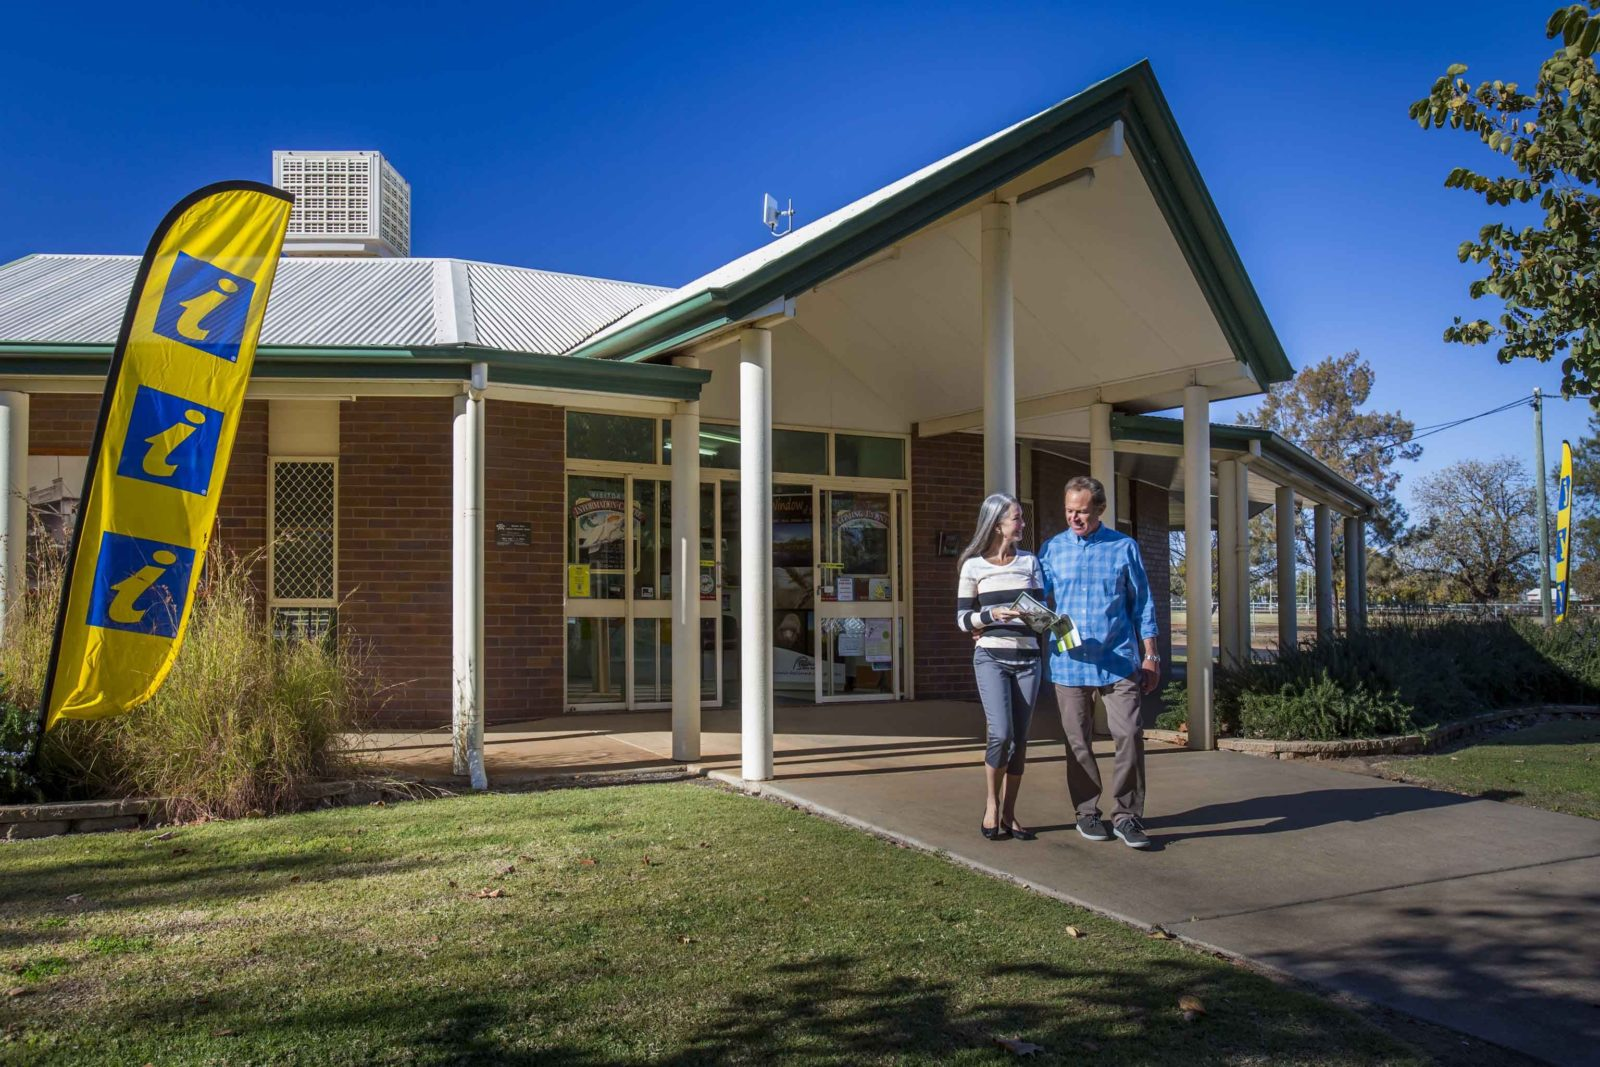 Balonne Shire Visitor Information Centre